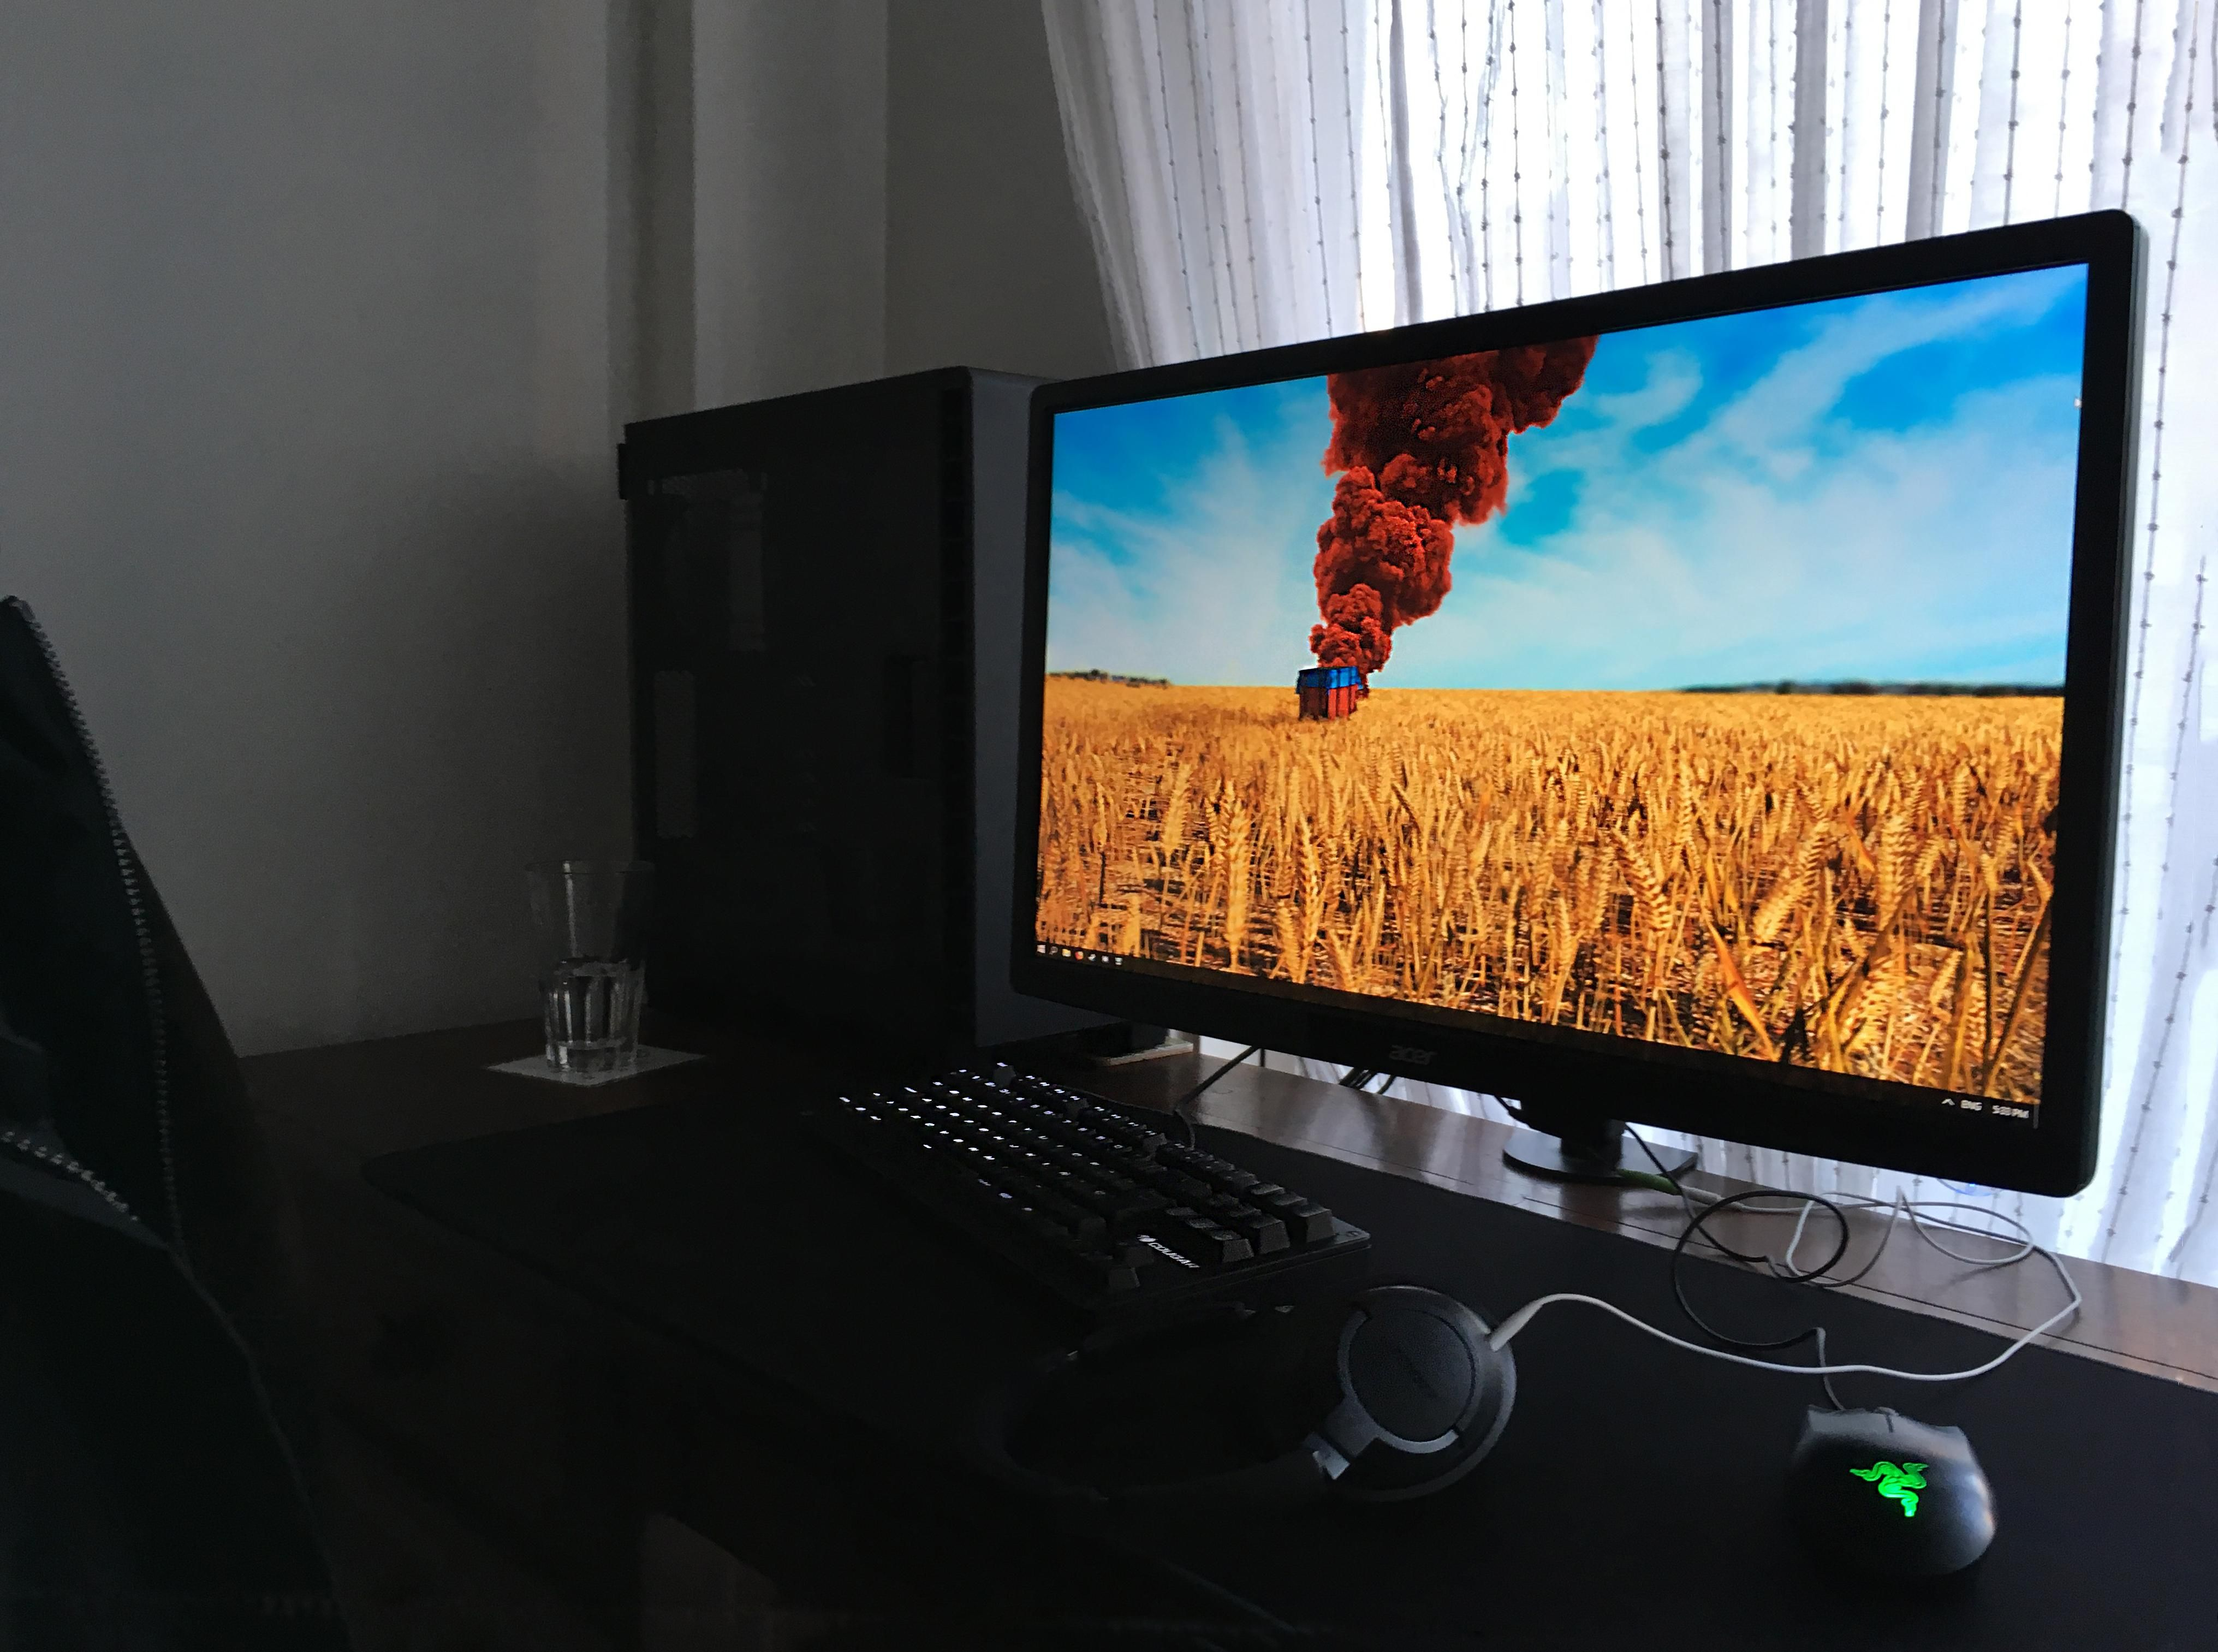 Best 1000 Gaming Pc Build Guide 1080p 120hz 1440p 60hz Hardware Times